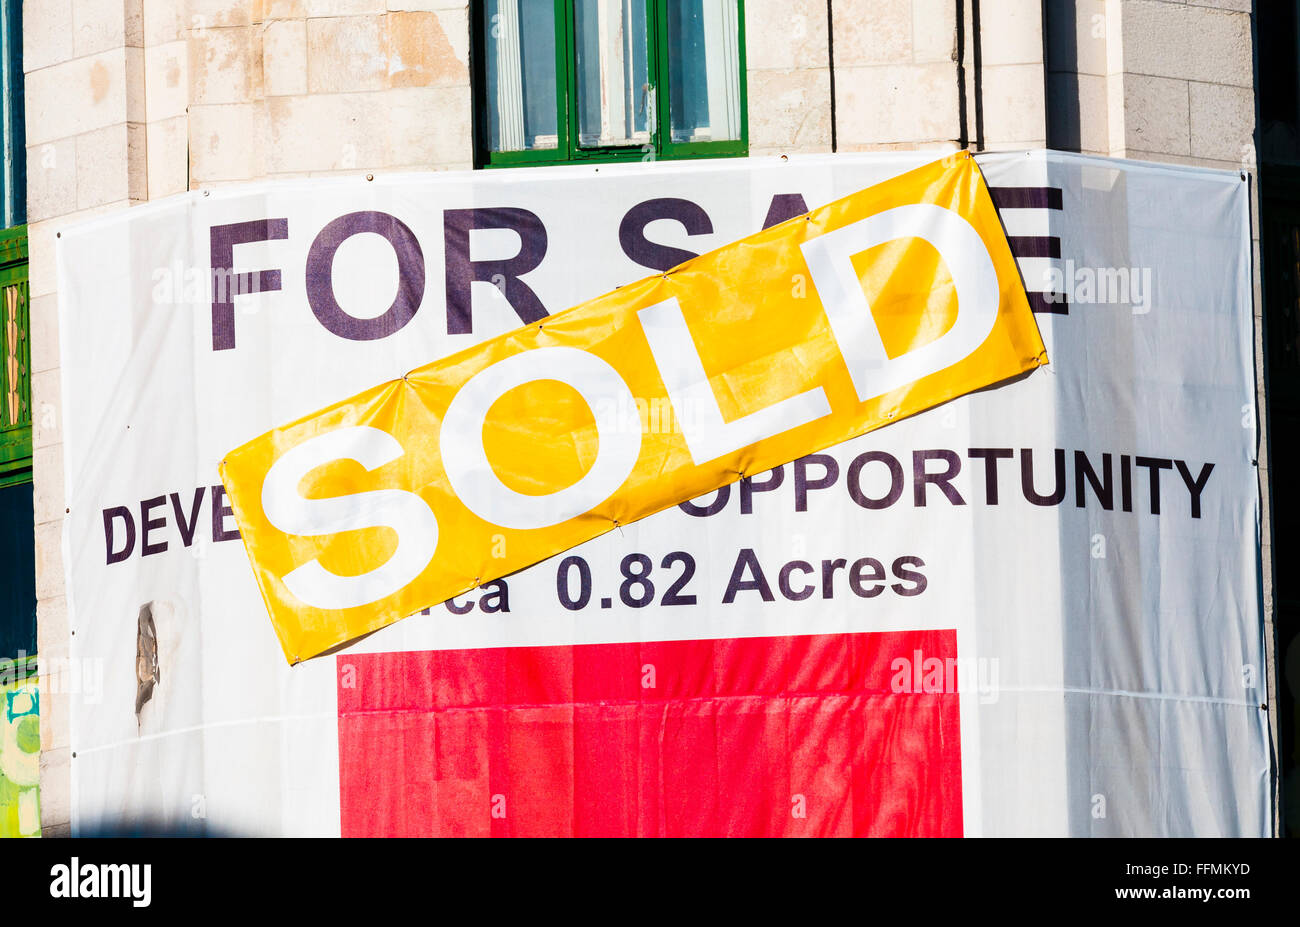 Estate agent sign on a commercial property advising that it has been sold. - Stock Image